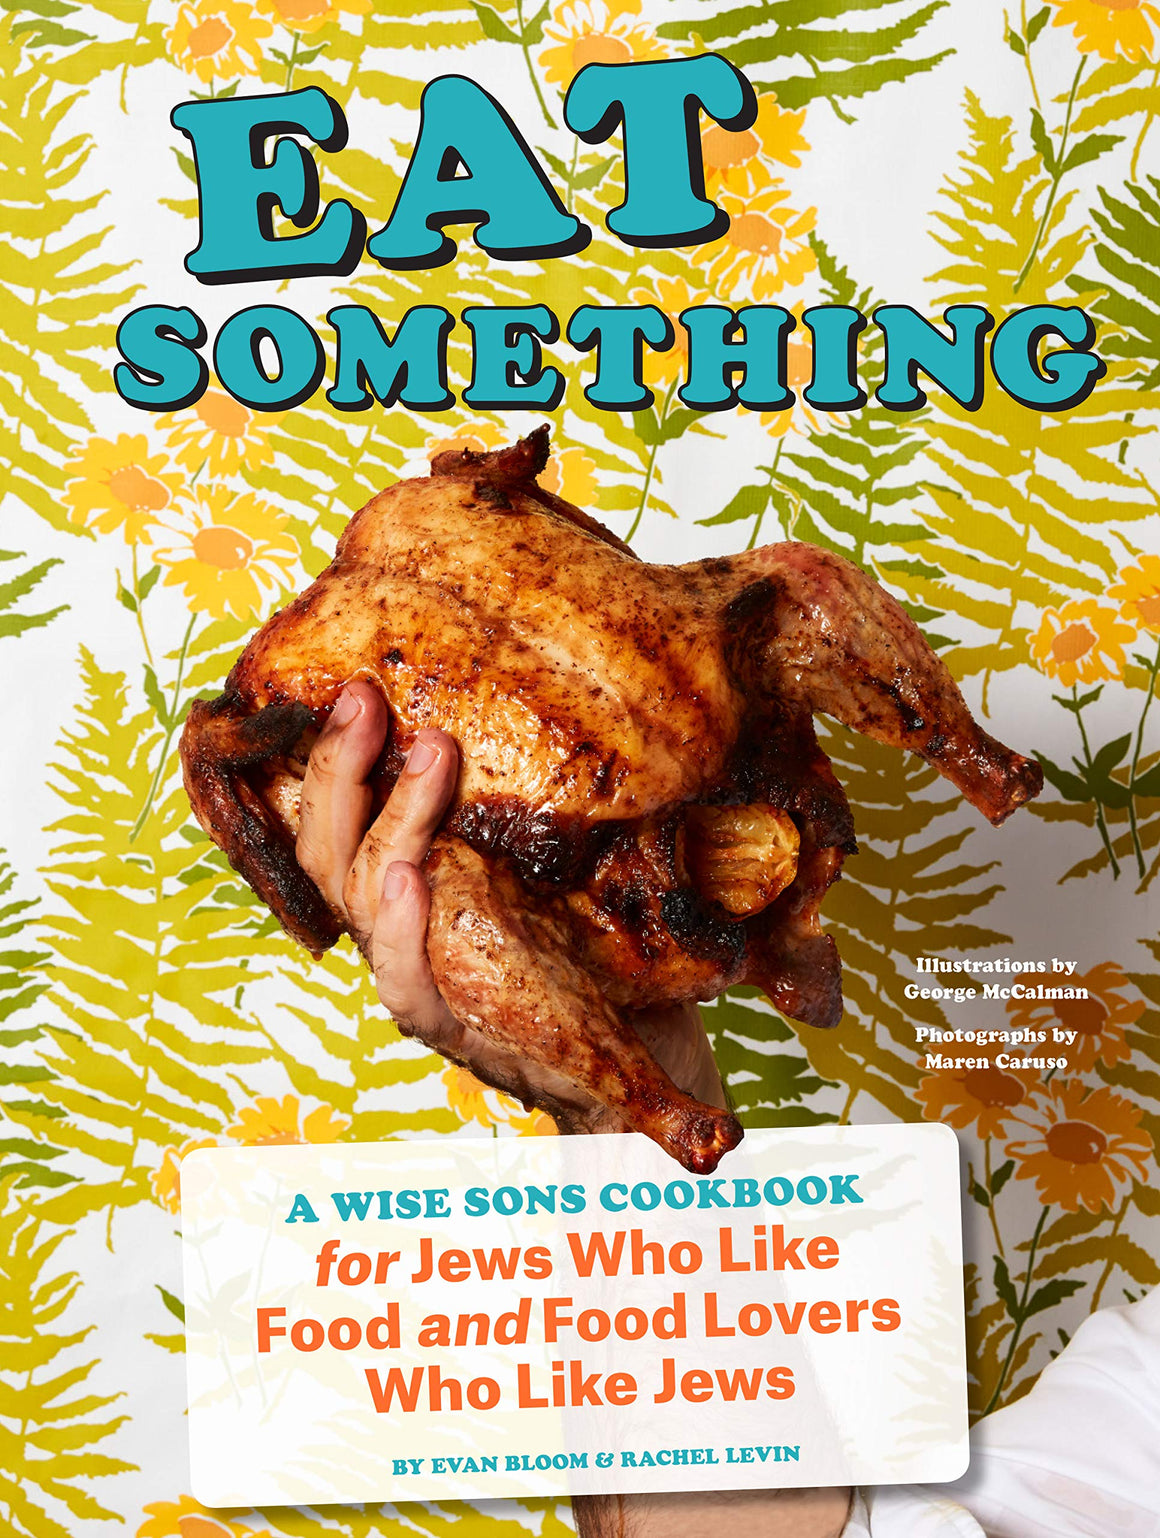 Evan Bloom and Rachel Levin. Eat Something: A Wise Sons Cookbook for Jews Who Like Food and Food Lovers Who Like Jews. SIGNED!